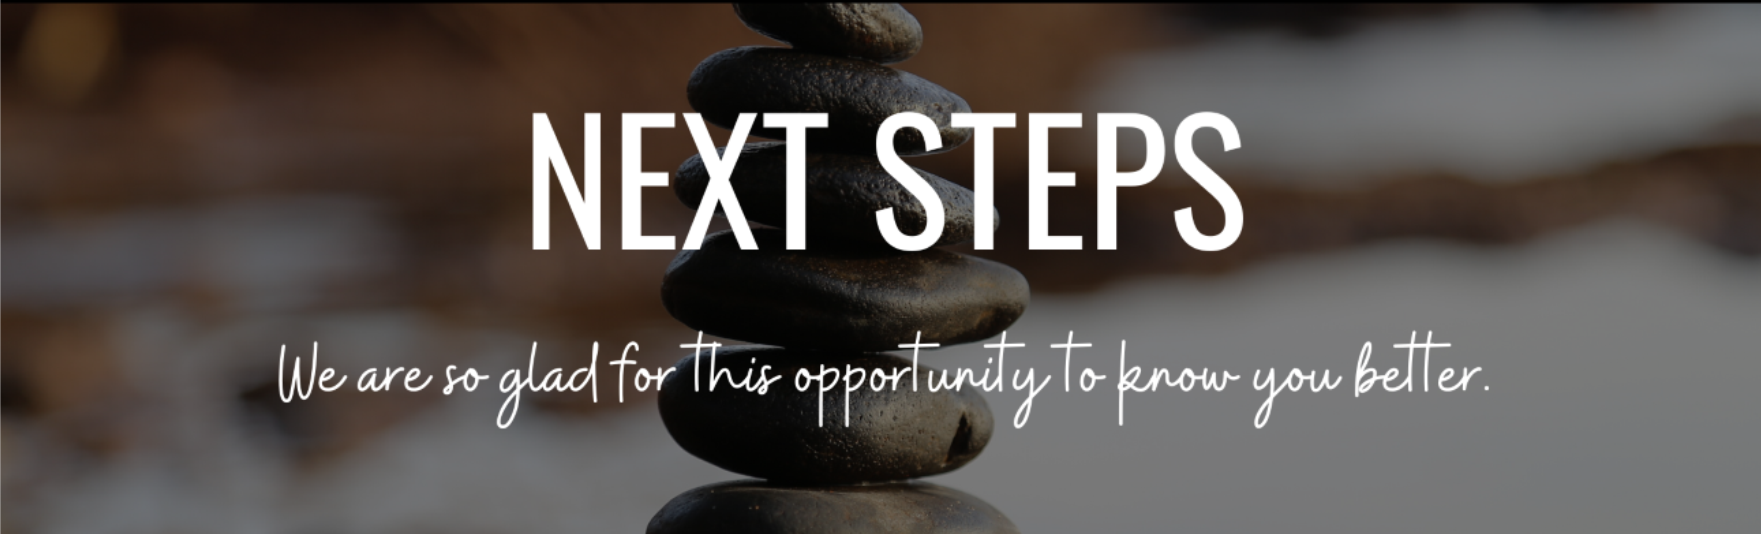 Next Steps page header graphic